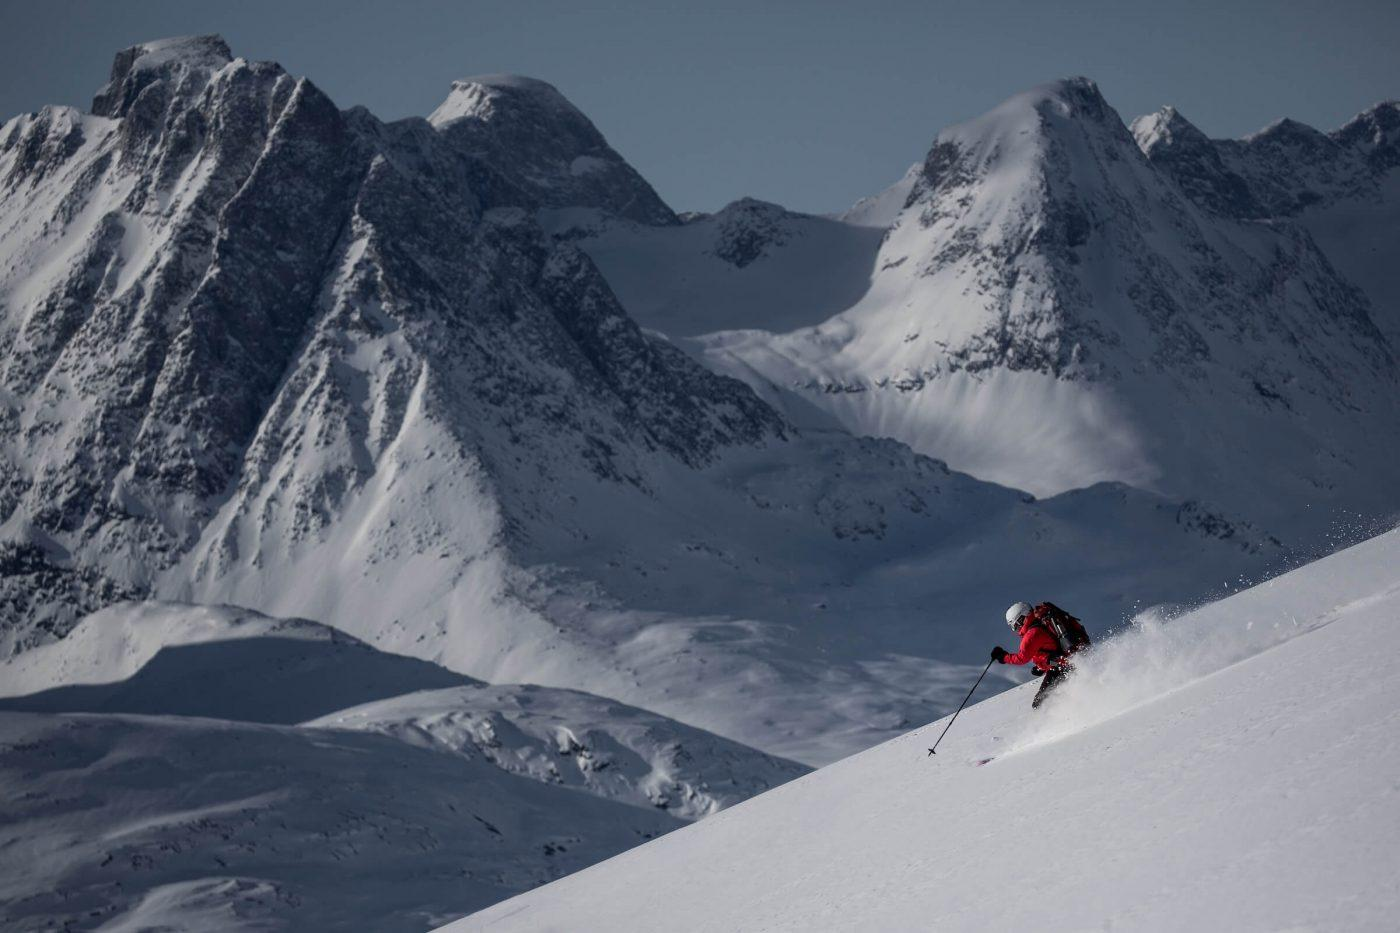 Skiing among remote peaks in East Greenland near Kulusuk